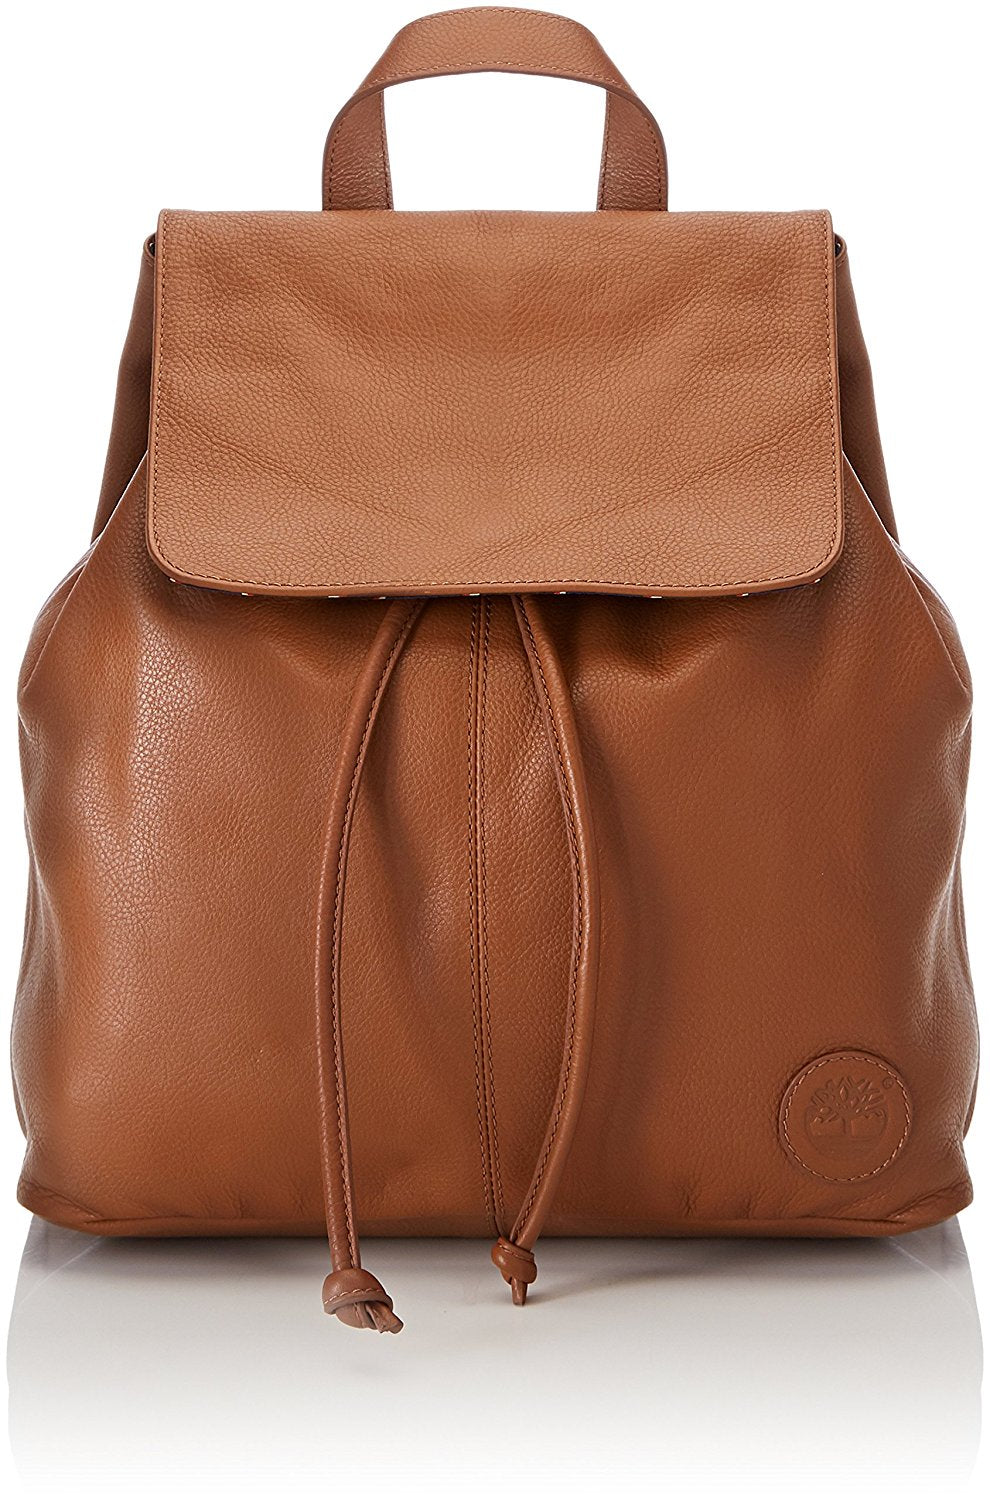 cf270bfc67 Handbags & Bags - Timberland Womens Backpack Backpack Handbags was ...